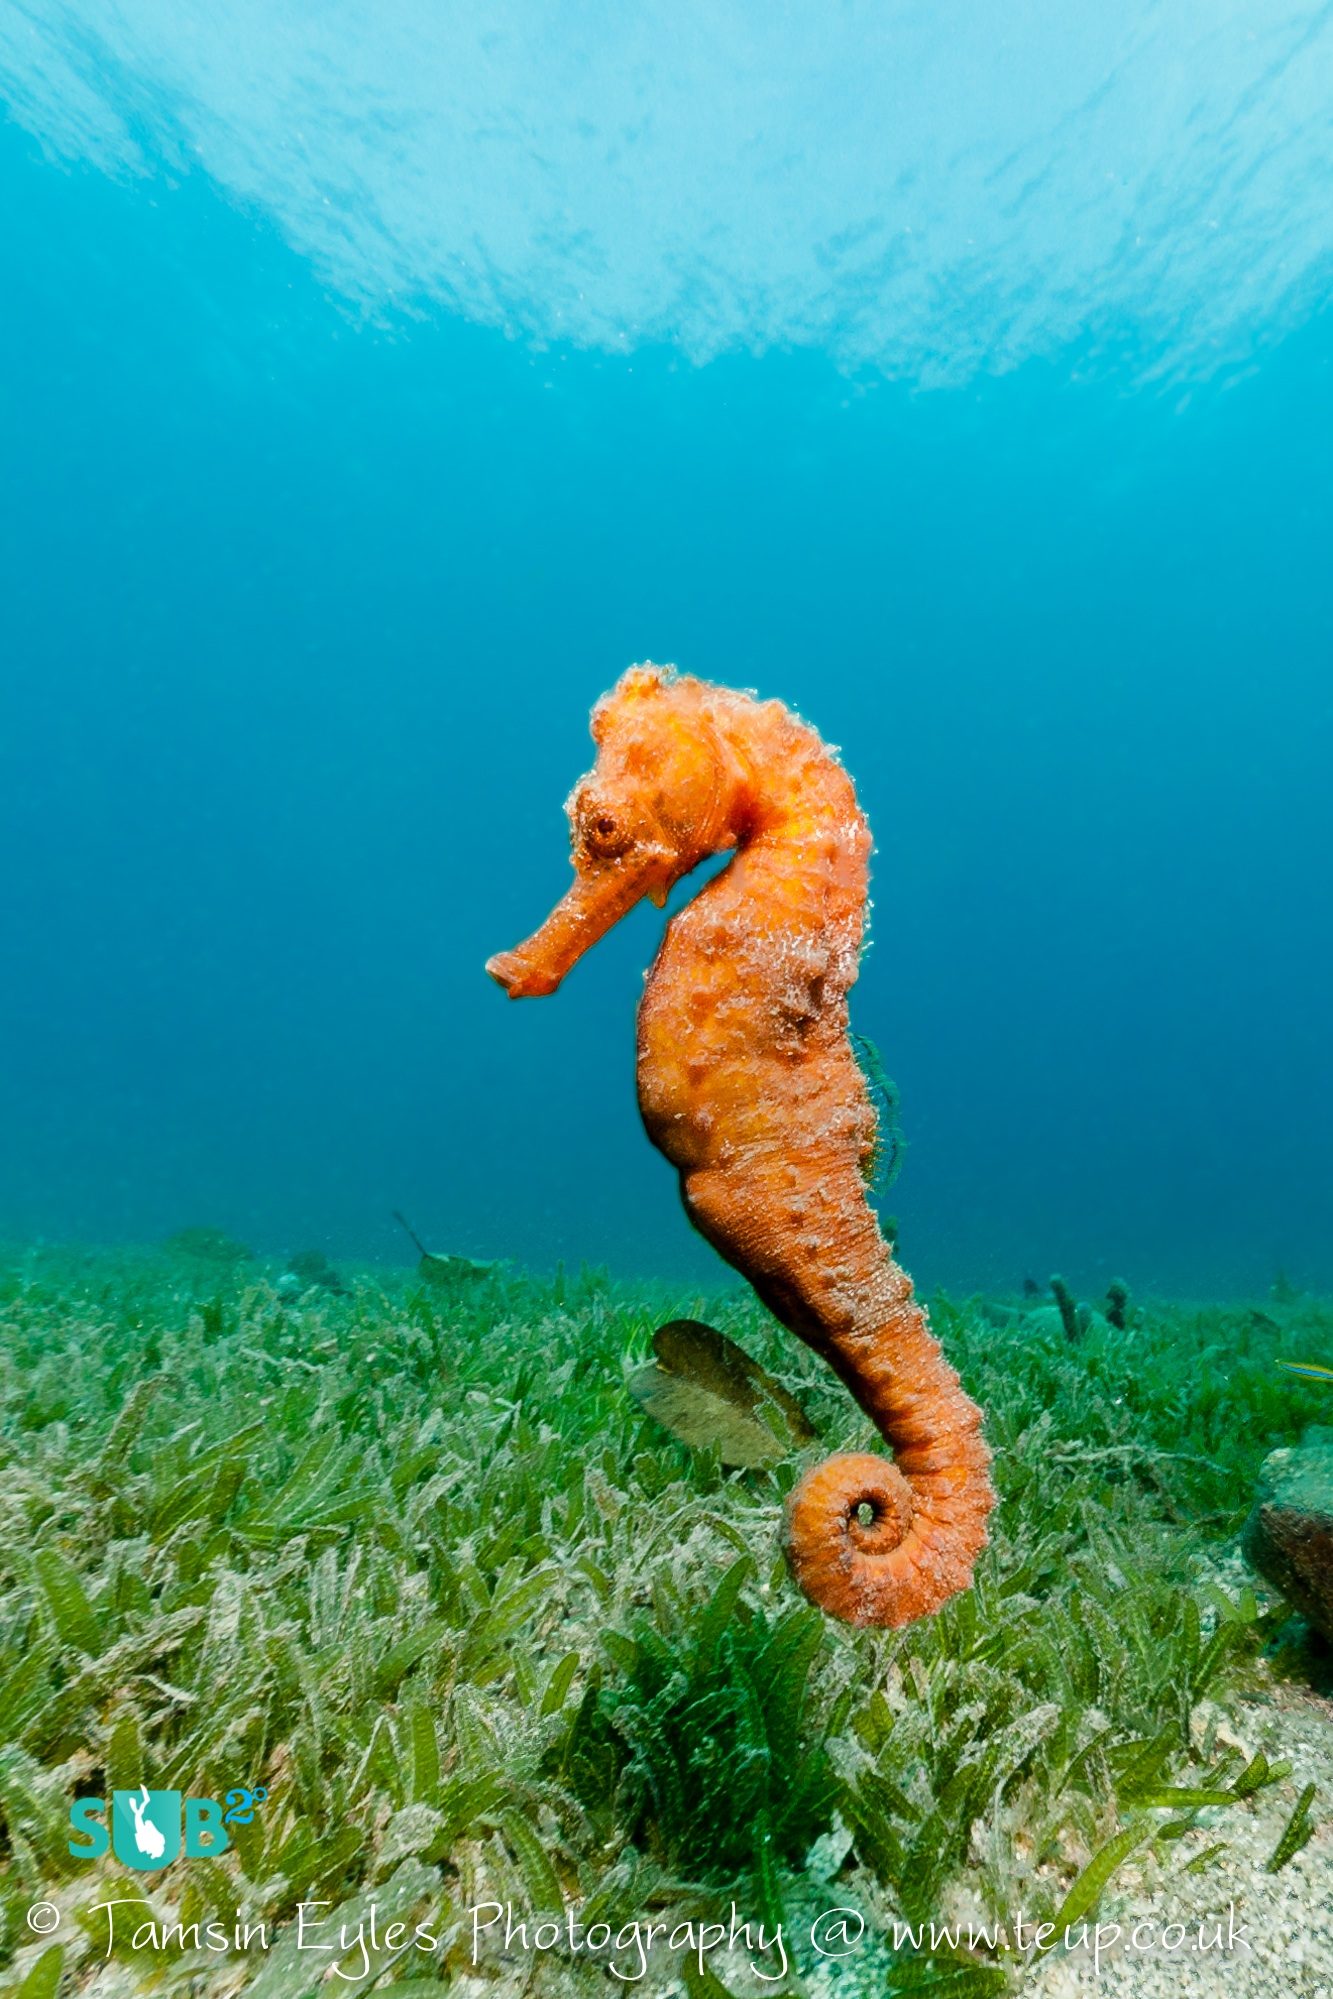 Many of the reefs around Bequia have resident seahorses. This gorgeous orange longsnout seahorse was investigating the seagrass by the reef. Photo courtesy of Tamsin Eyles.